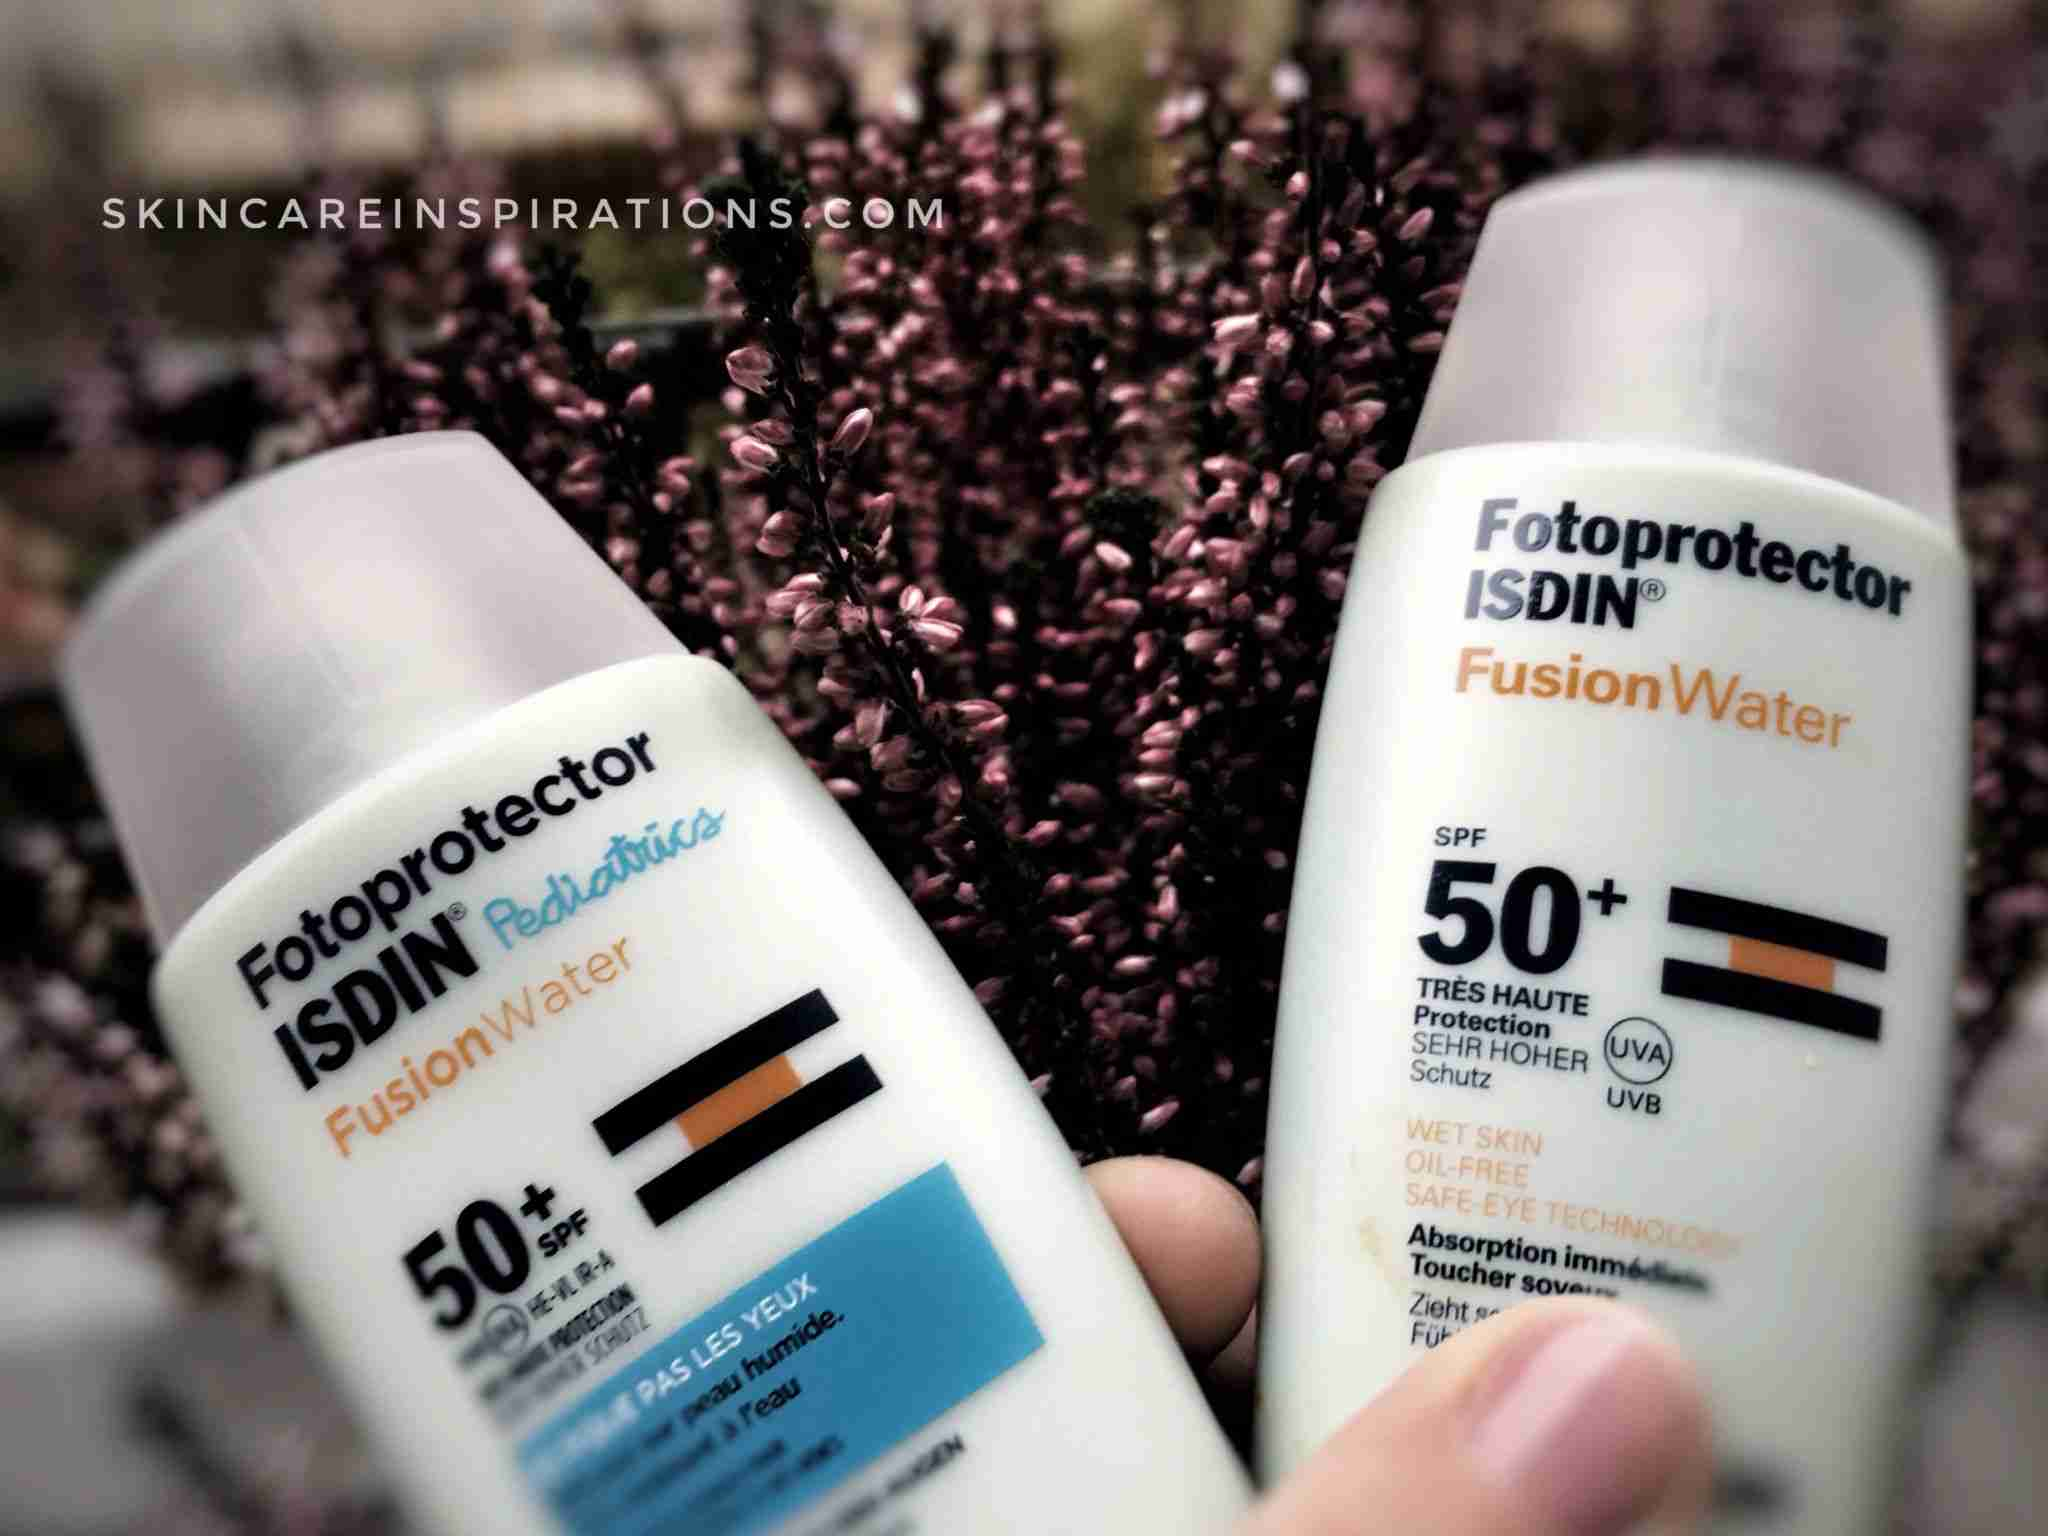 ISDIN Fusion Water Pediatrics SPF 50+ Review